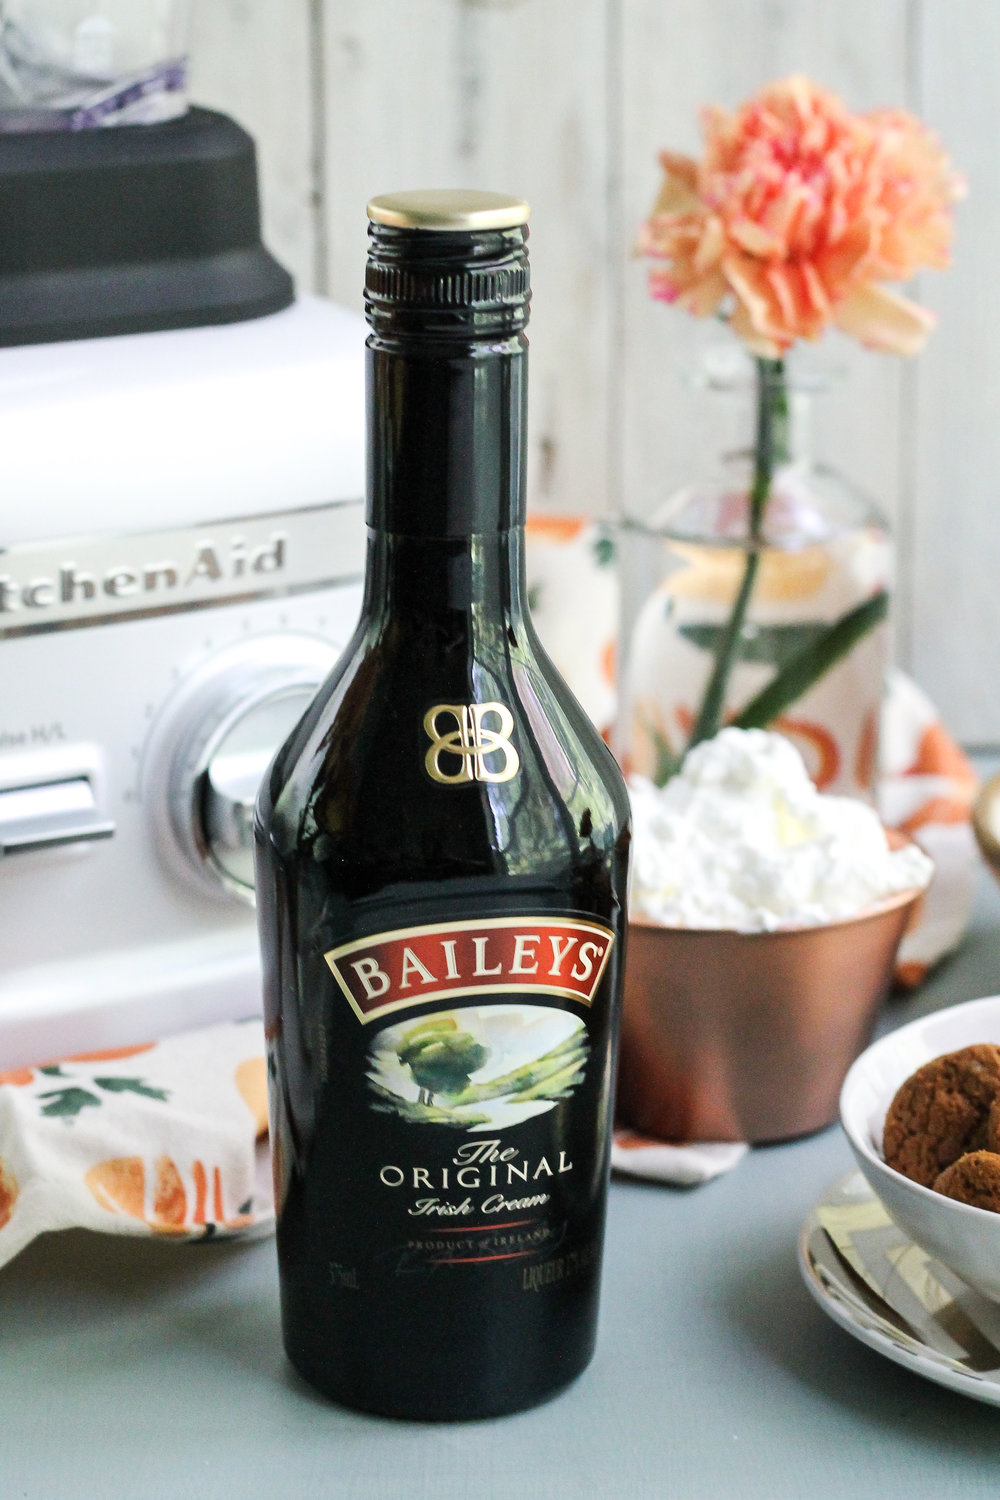 BAILEYS PUMPKIN MILKSHAKES WITH GINGERSNAP CRUMBS ARE THE VERY BEST WAY TO CELEBRATE AUTUMN [ www.pedanticfoodie.com ]